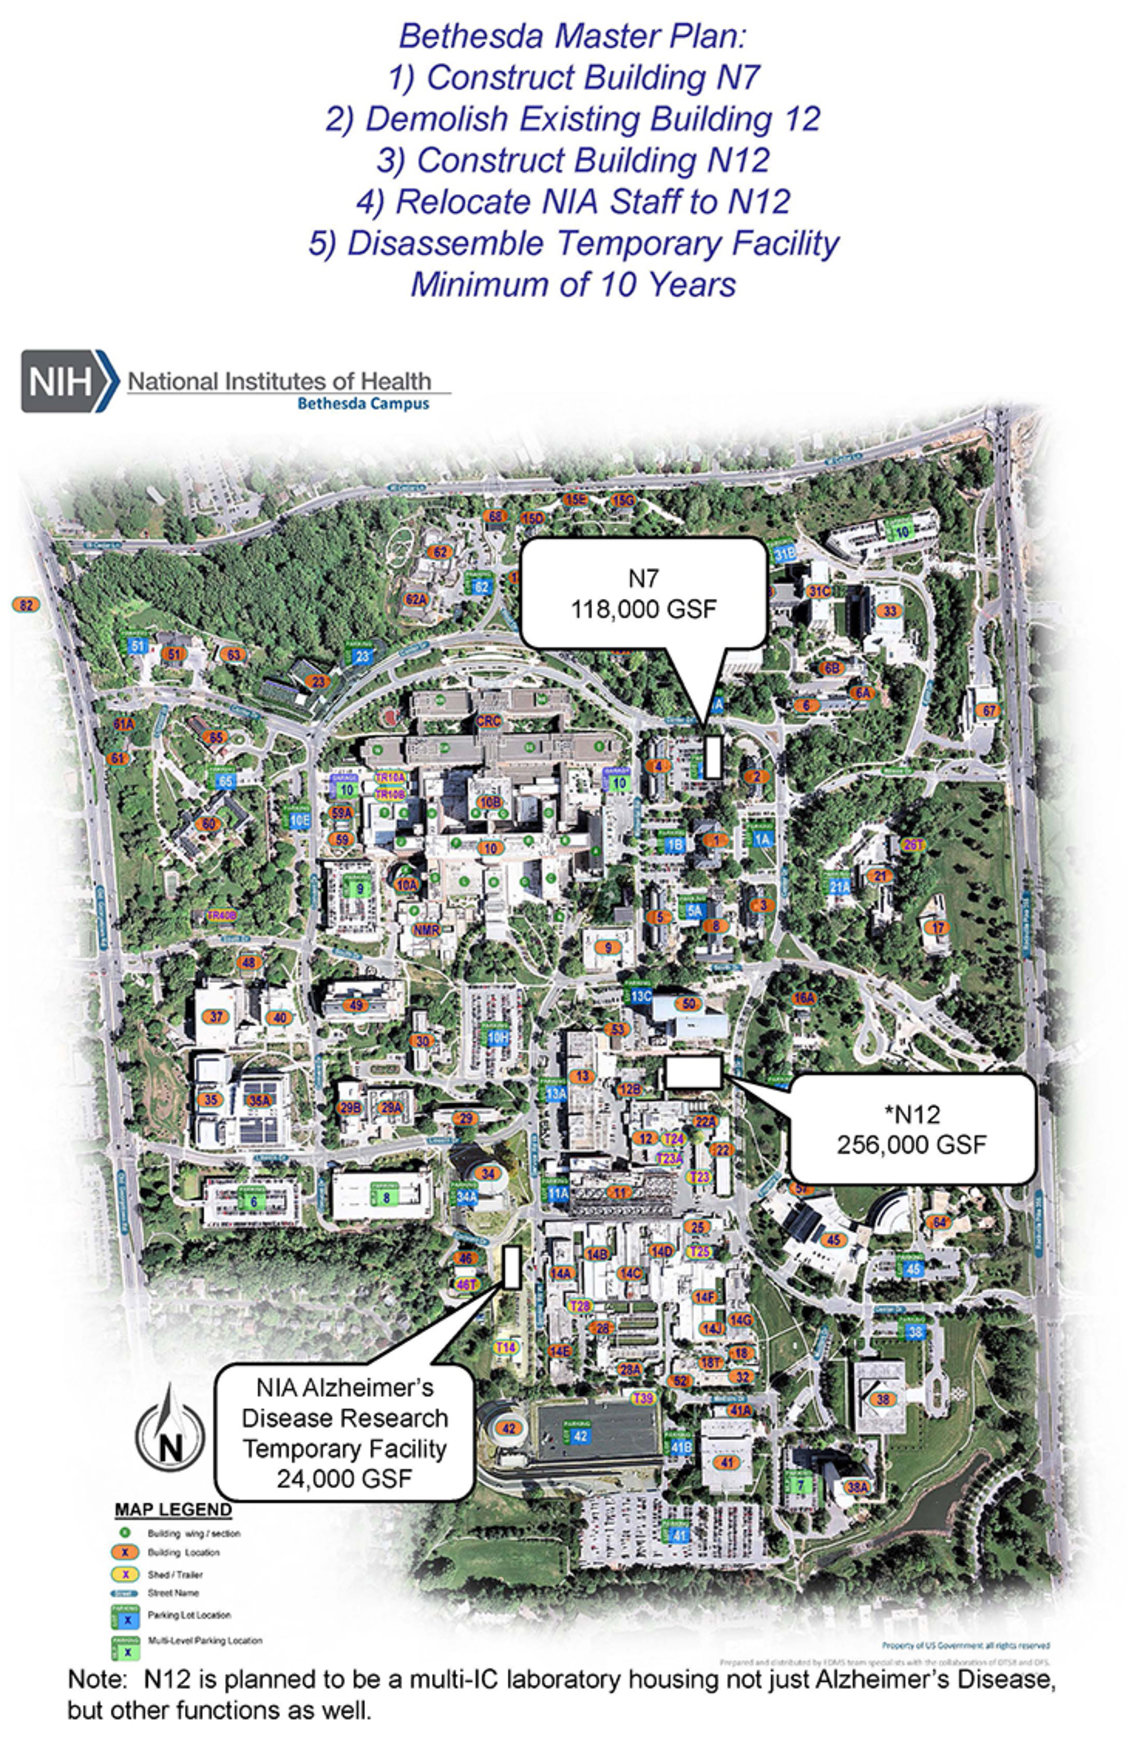 A map of NIH illustrates where the new Alzheimer's disease research facility, found in the southwest area of campus, will be in relation to other scientific buildings.